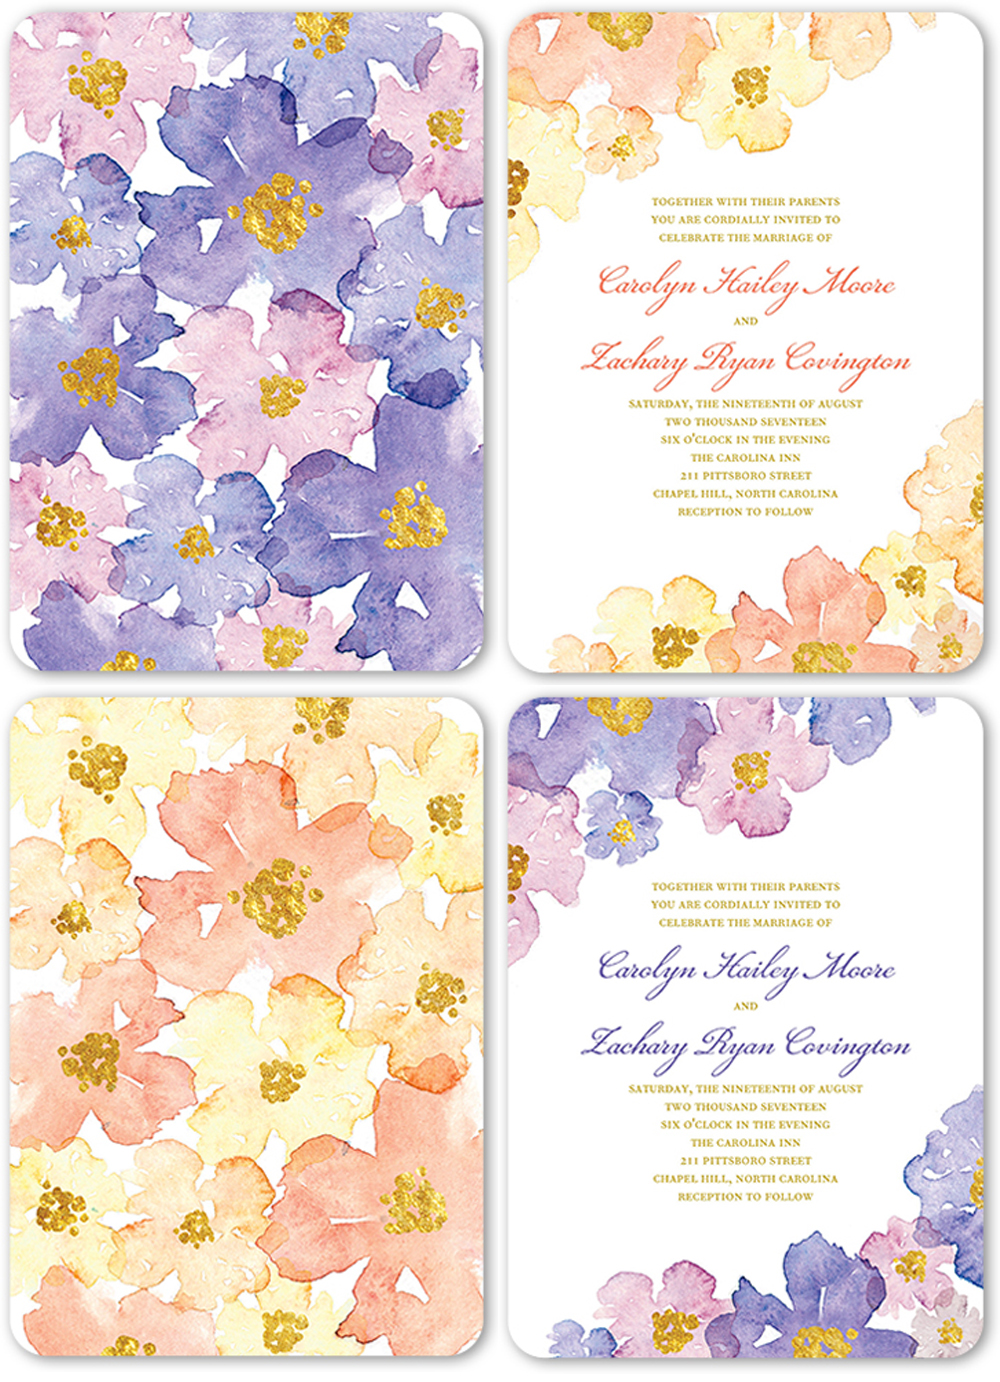 Watercolor Wedding Inspiration - Invitation from Shutterfly - Blooming Forever